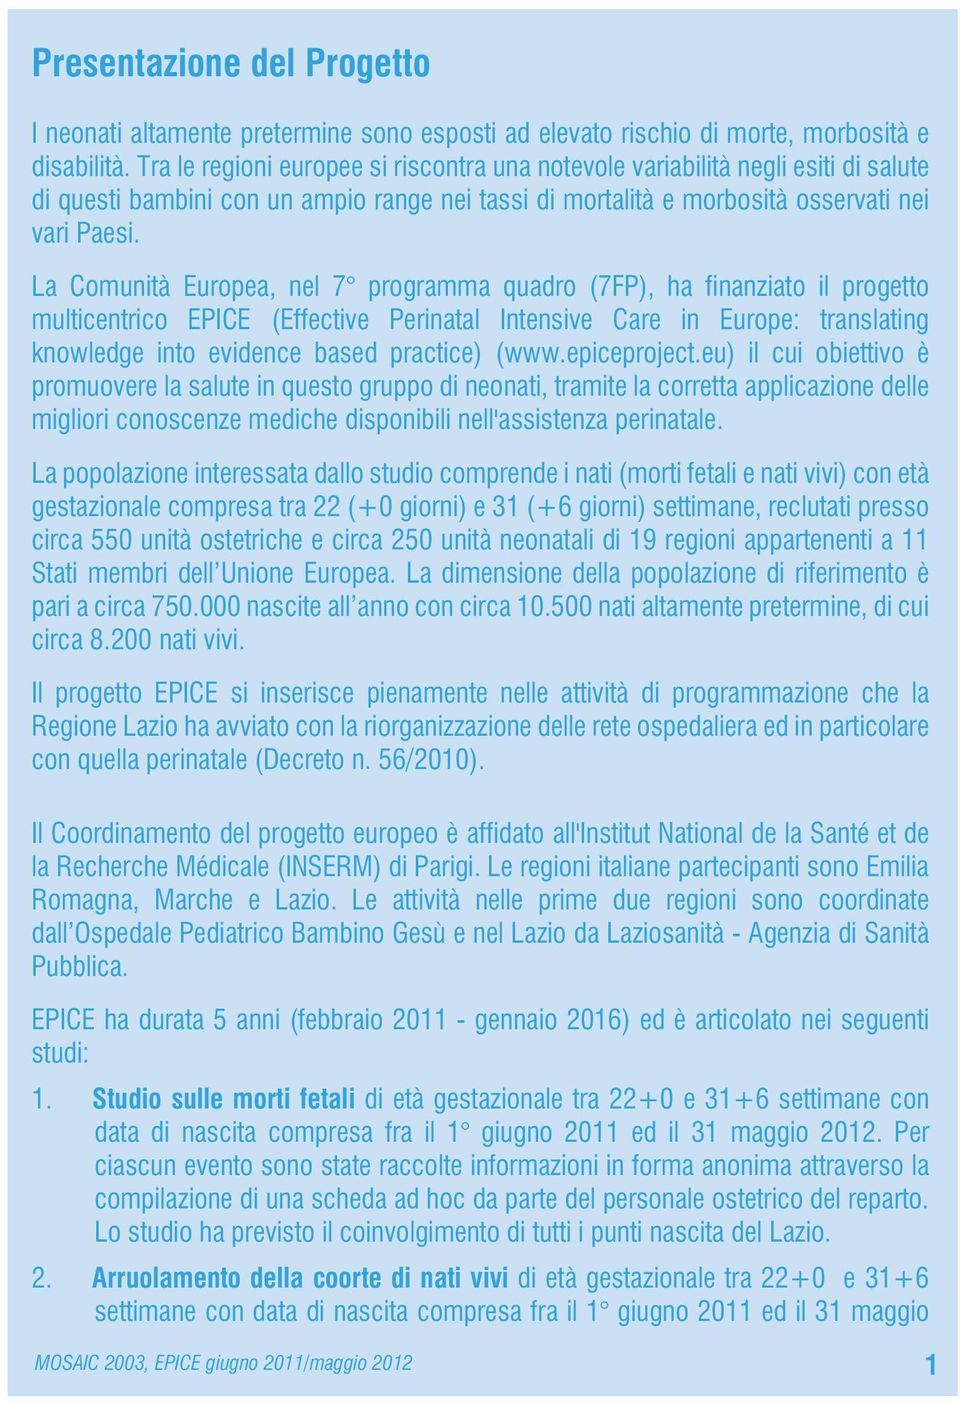 La Comunità Europea, nel 7 programma quadro (7FP), ha finanziato il progetto multicentrico (Effective Perinatal Intensive Care in Europe: translating knowledge into evidence based practice) (www.